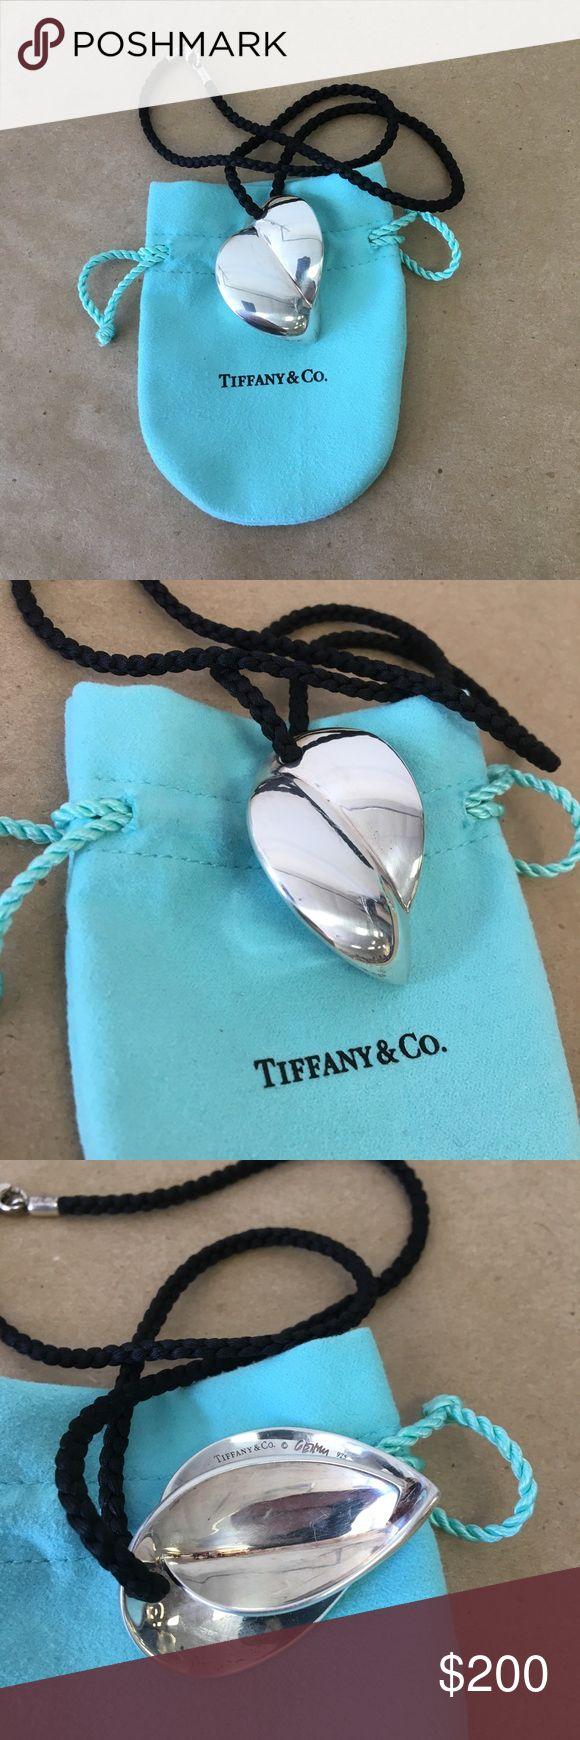 Tiffany & Co Silver Frank Gehry XL Heart Necklace! Tiffany & Co. .925 Sterling Silver Frank Gehry Large Heart Pendant Necklace Inventory #  6183-15 Everything we sell is 100% guaranteed authentic! We list dozens of items every day, so check our other listings out! We are Meta Exchange, a resale store in Baton Rouge, LA! Sorry, no trades. REASONABLE offers will be considered. We ship same/next day. Thanks! Follow us: FB metaexchange  IG meta225 Tiffany & Co. Jewelry Necklaces